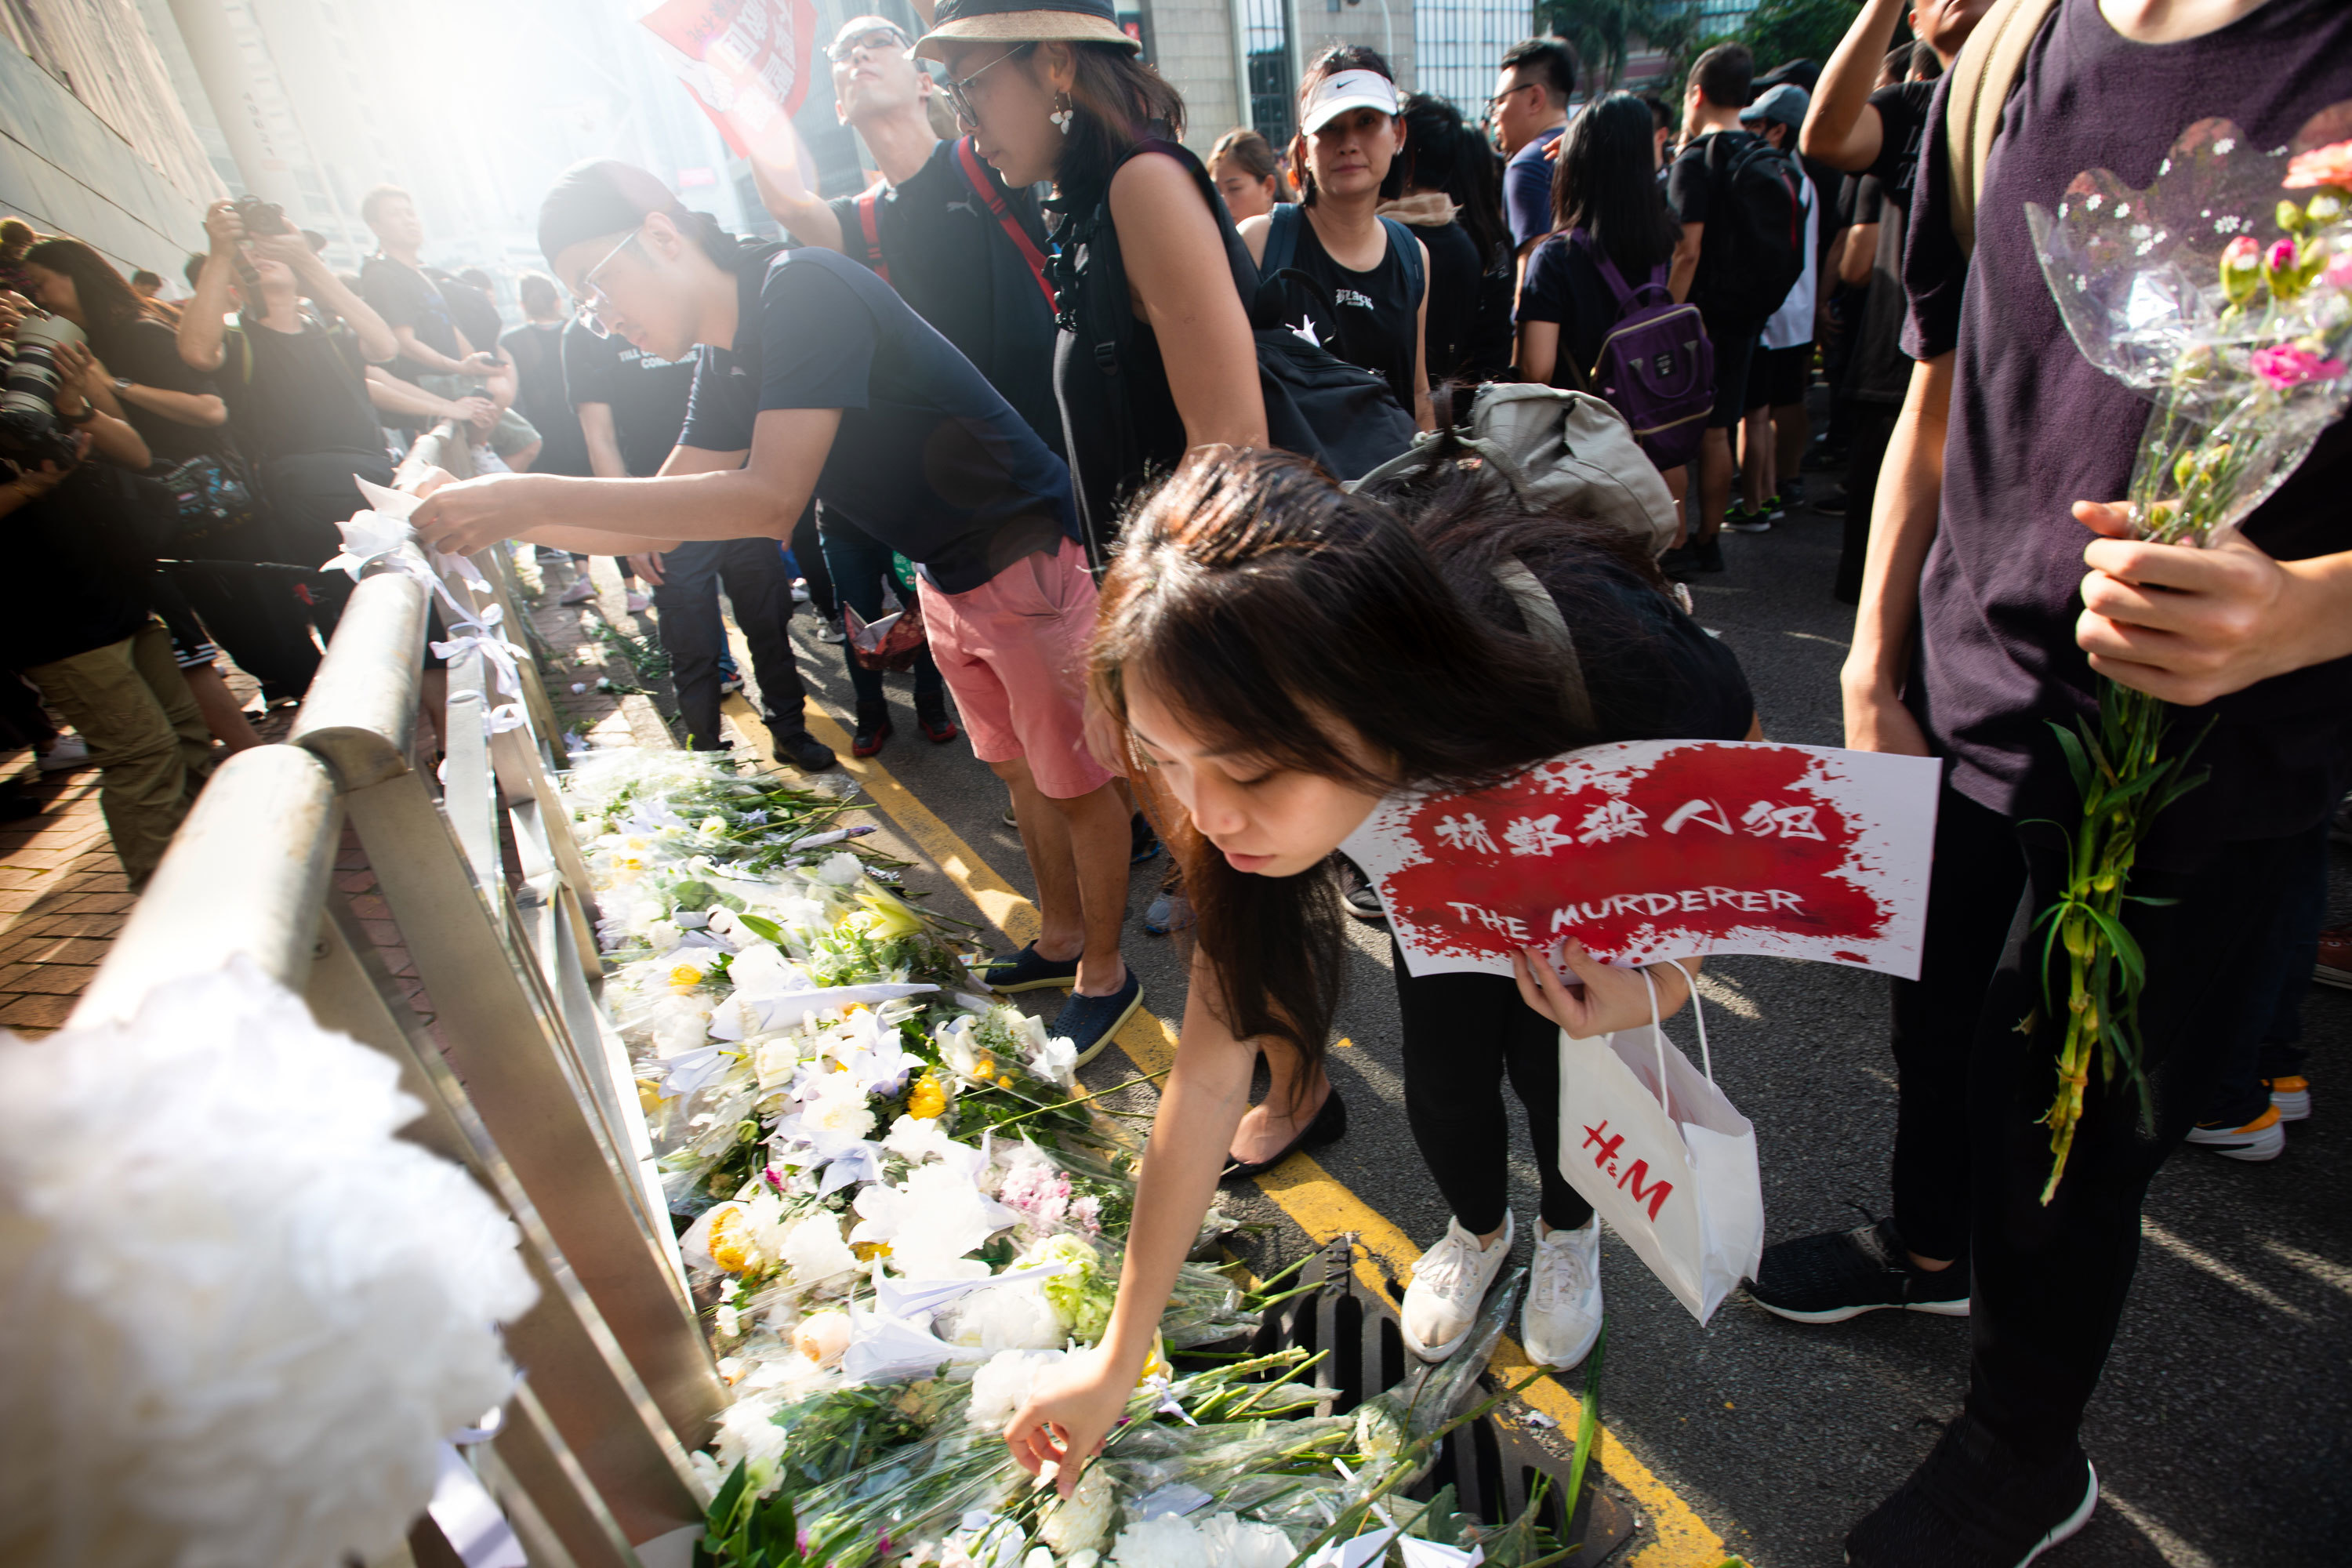 Mourners lay flowers at the memorial of a protester who took their own life. (Saša Petricic/CBC)